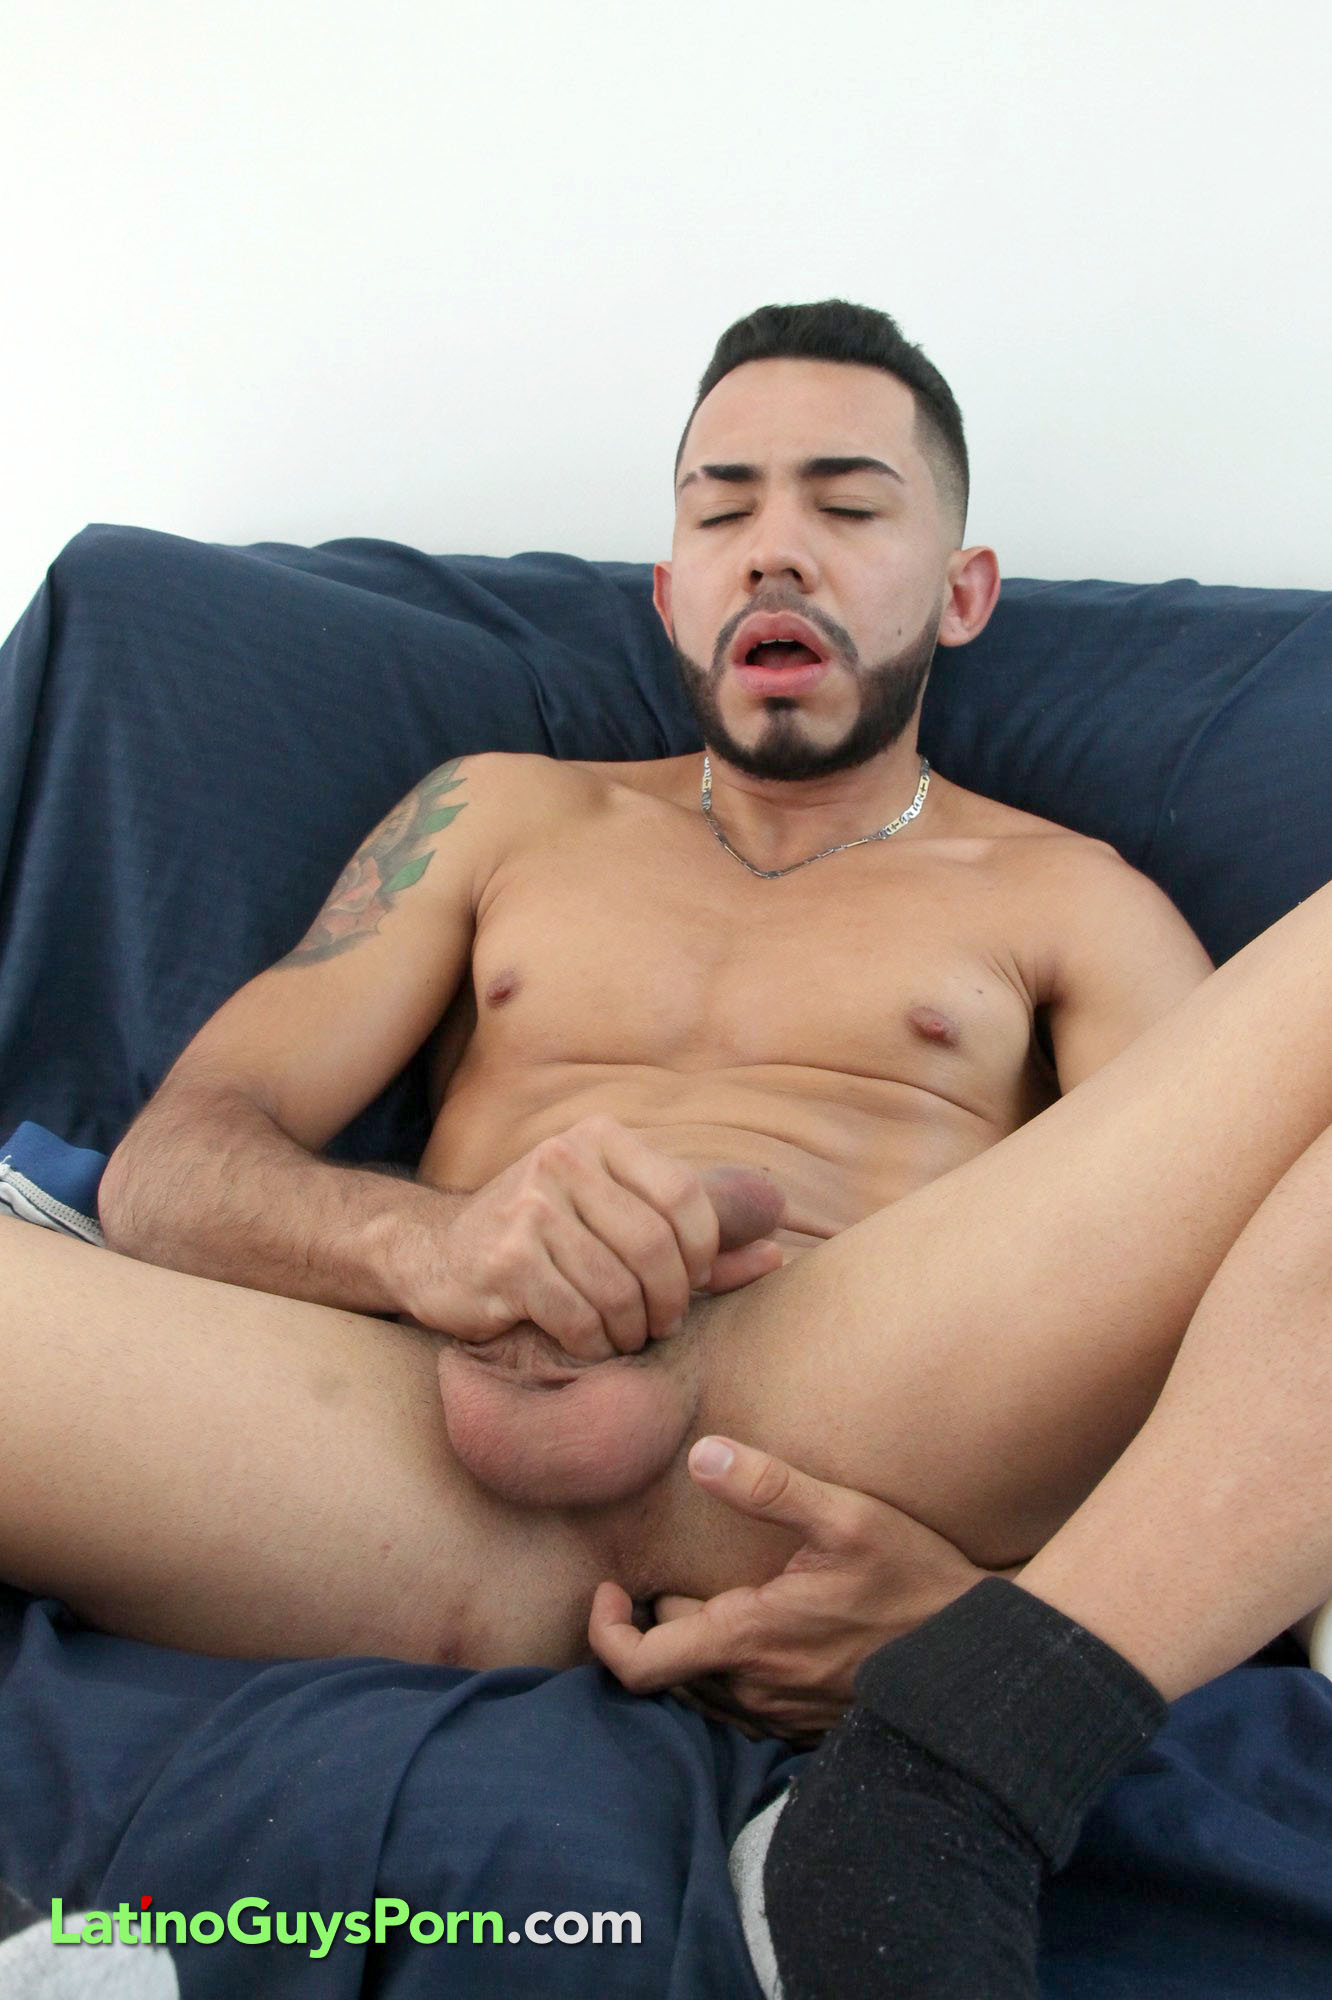 Twink nick methot jerking off with dildo